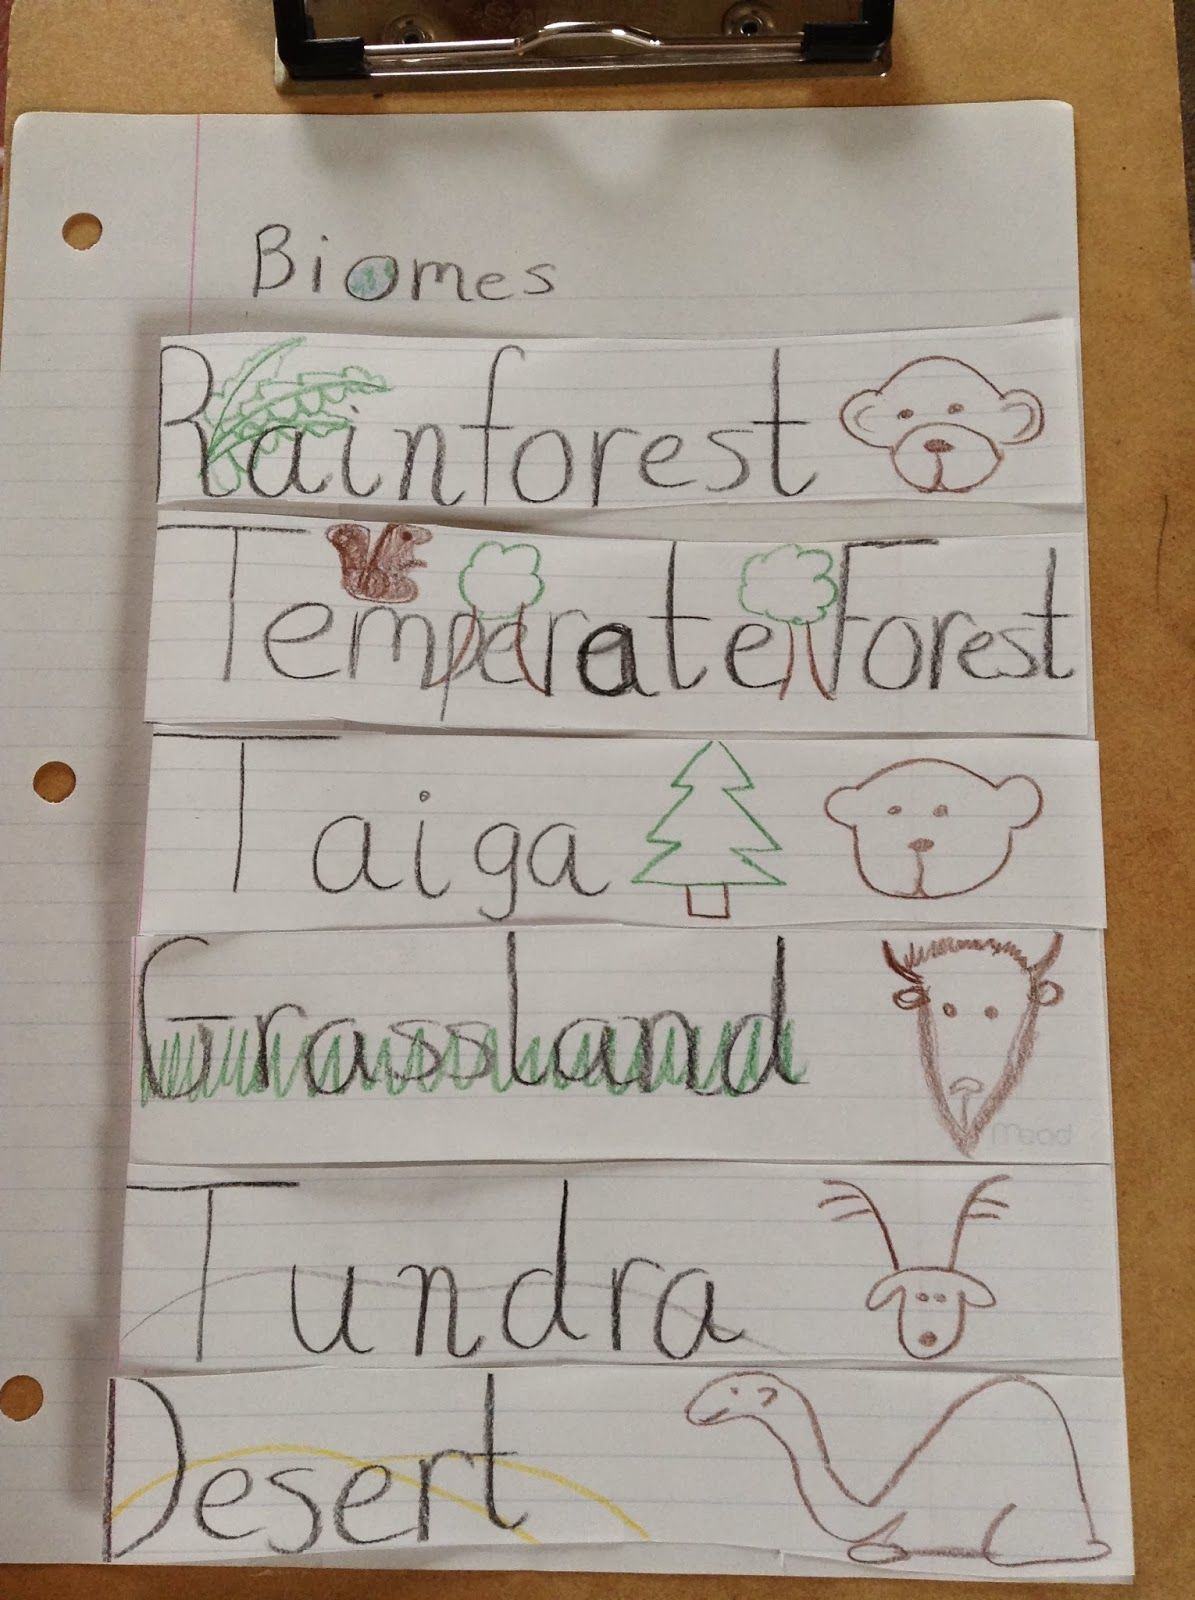 A Foldable On Biomes For The Science Notebook In